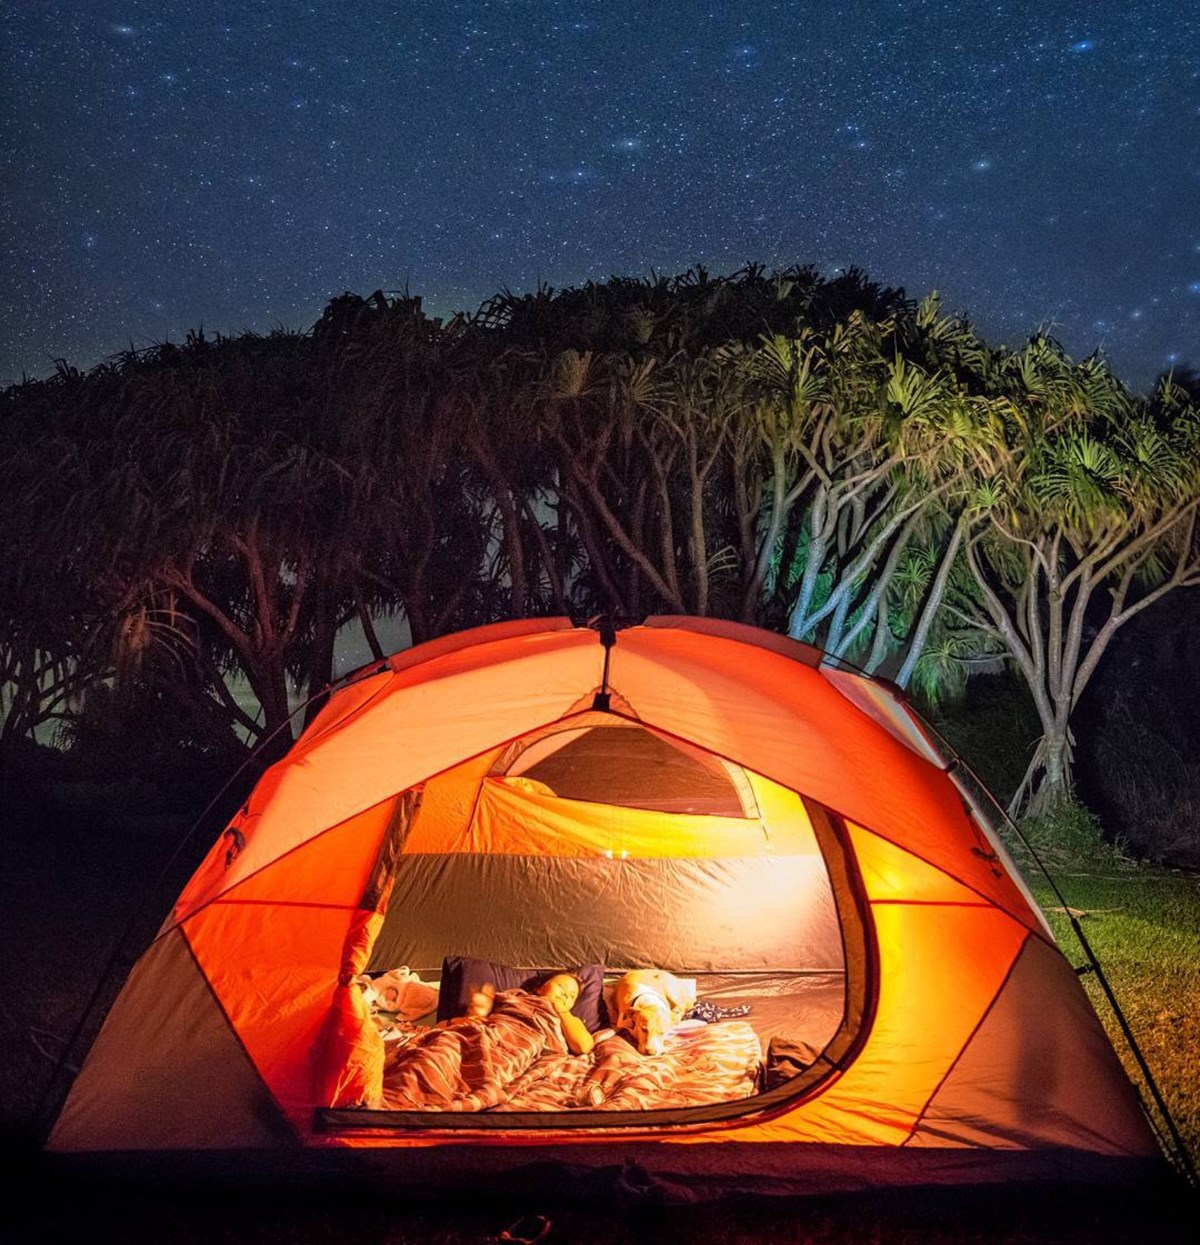 Campers enjoying the coastal campground in an orange tent under hala trees.